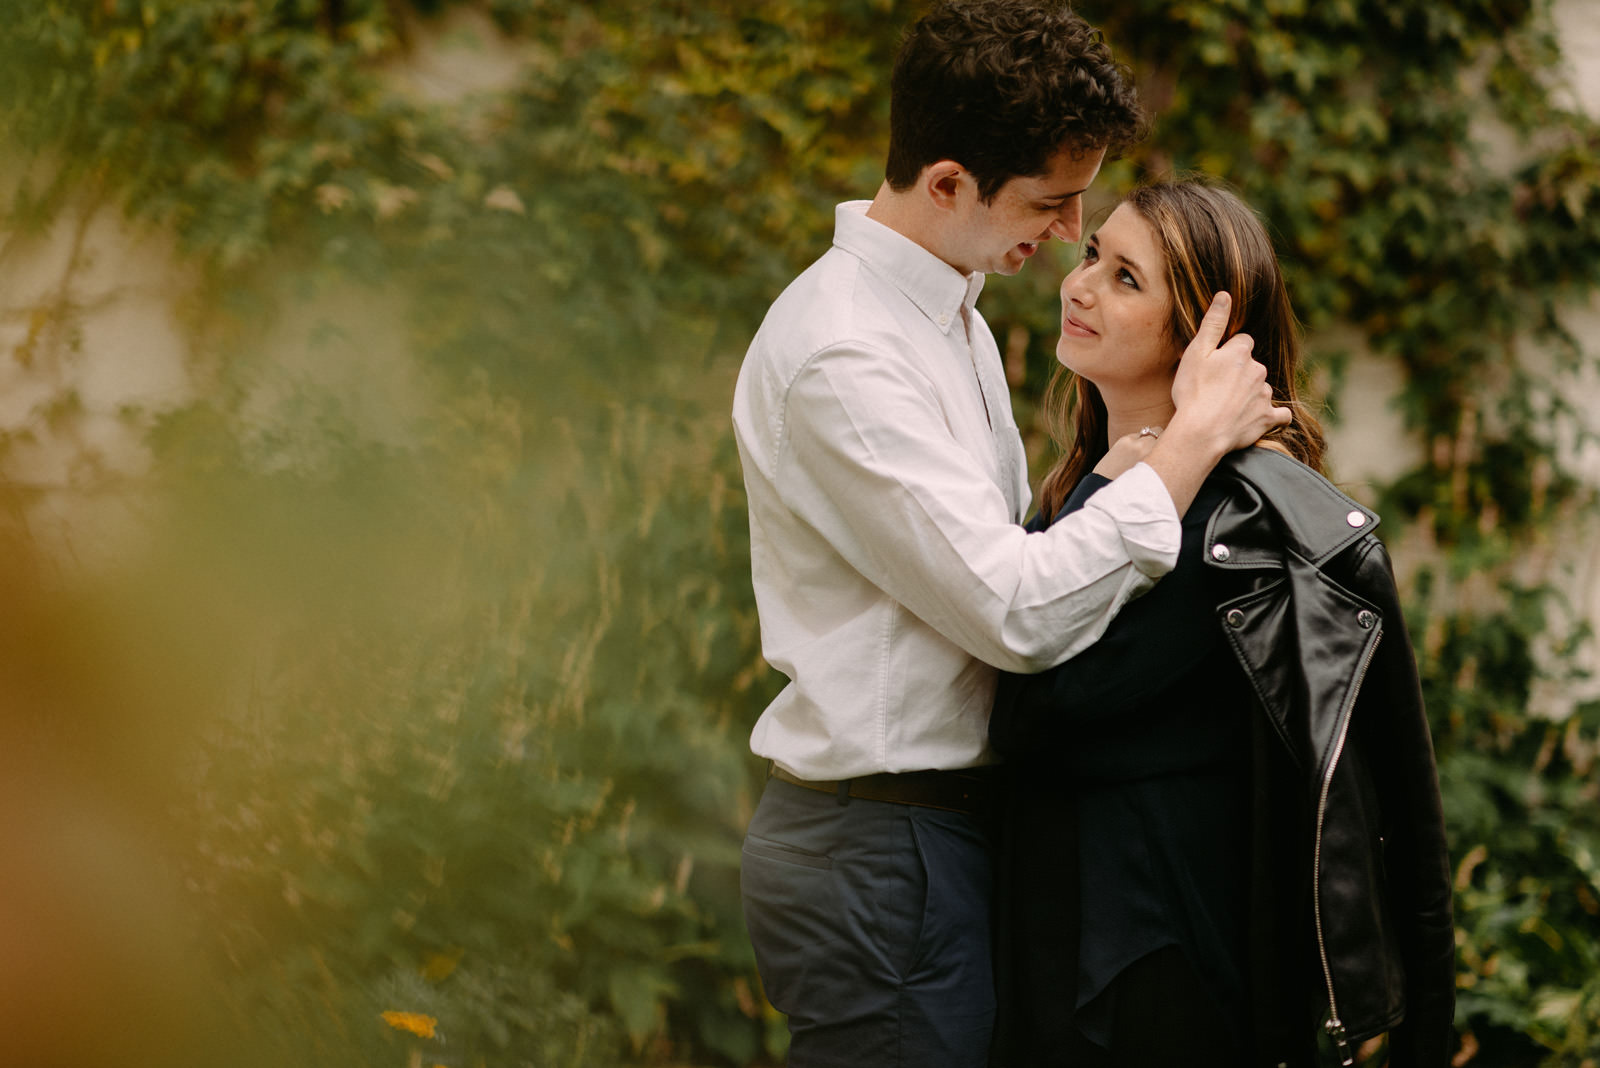 intimate engagement portrait in montmartre by paris photographer - luke sezeck